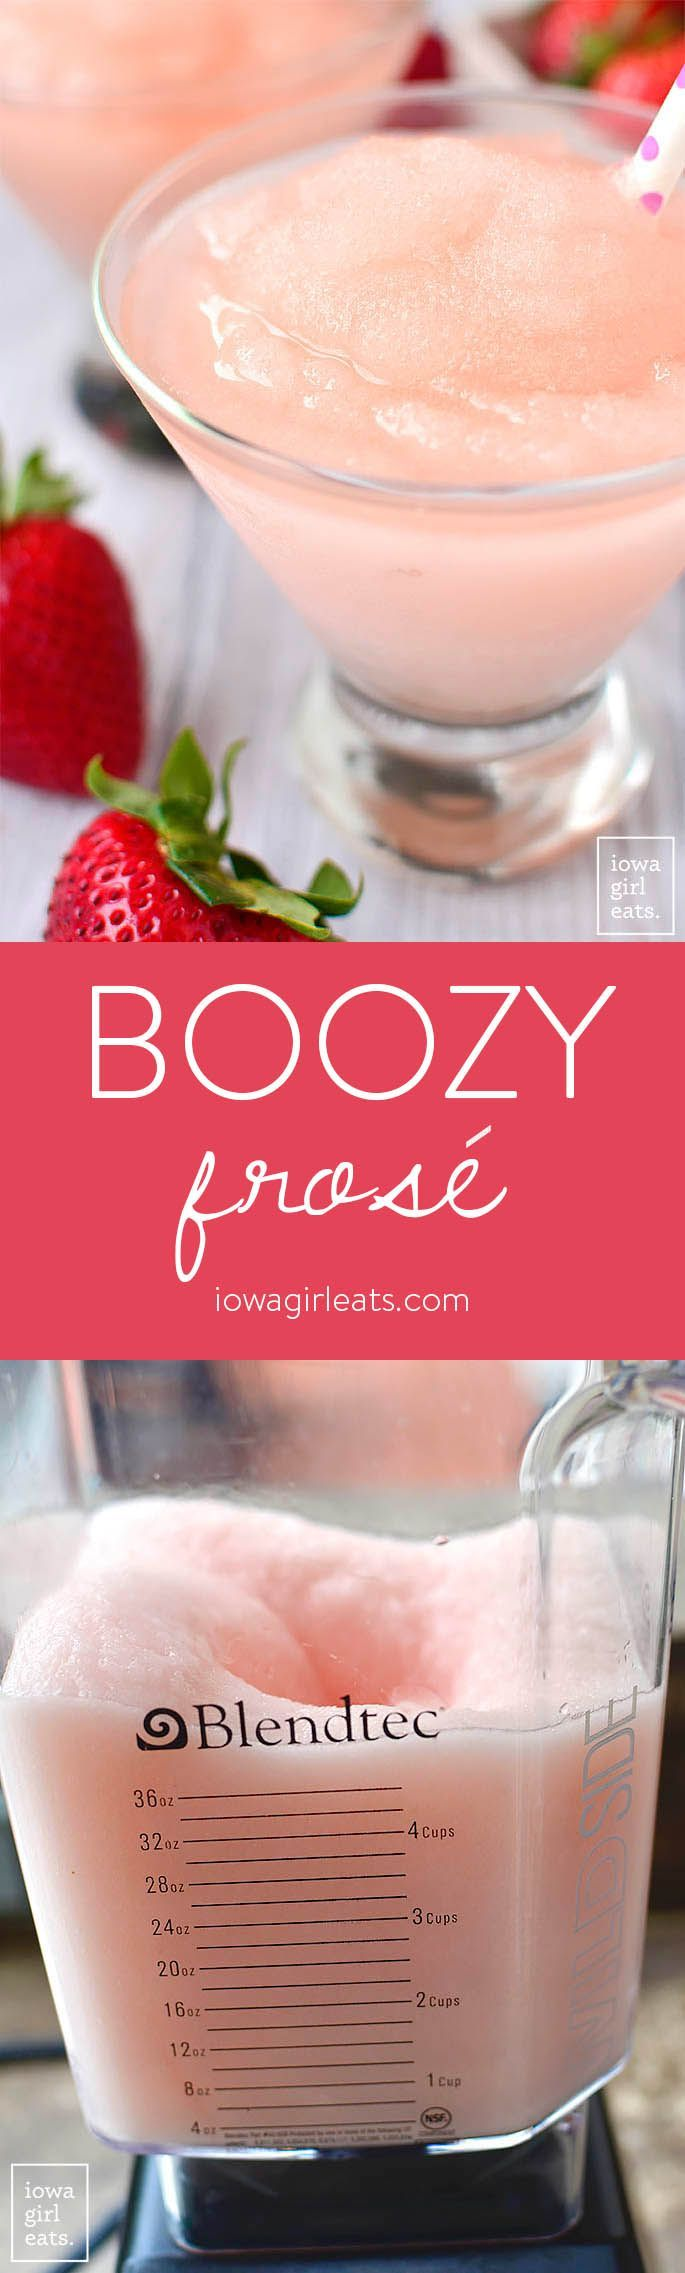 Boozy Frosé is a wine-based summery slushie that's cold and refreshing - and for adults only! This easy cocktail recipe will be a hit at happy hour.  iowagirleats.com